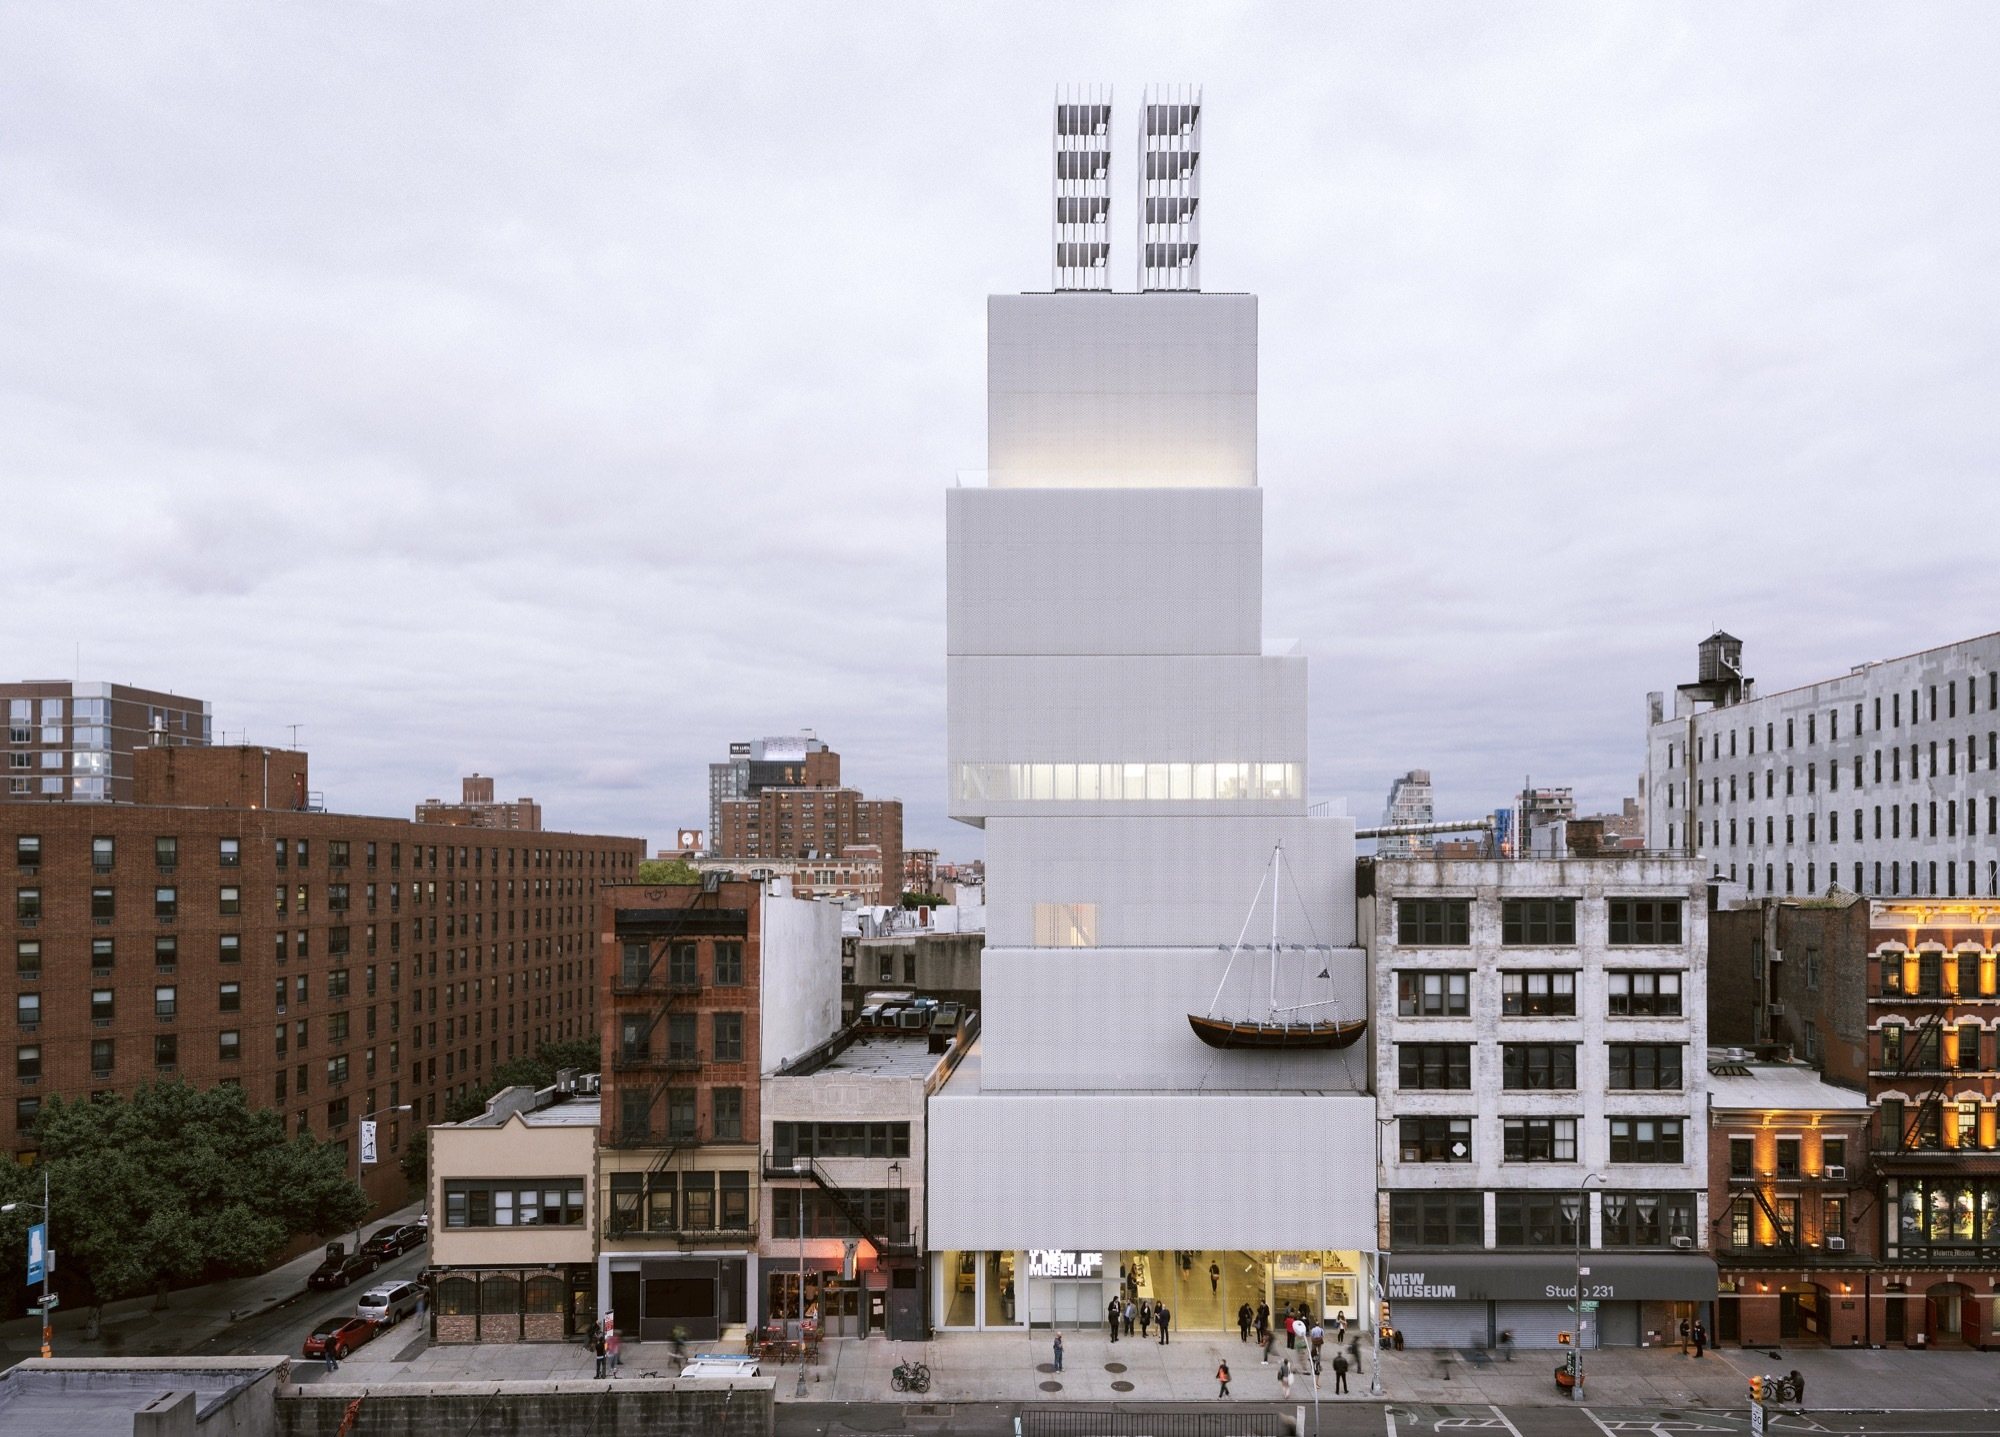 OMA / Shohei Shigematsu and Rem Koolhaas Selected to Design New Museum Expansion in New York